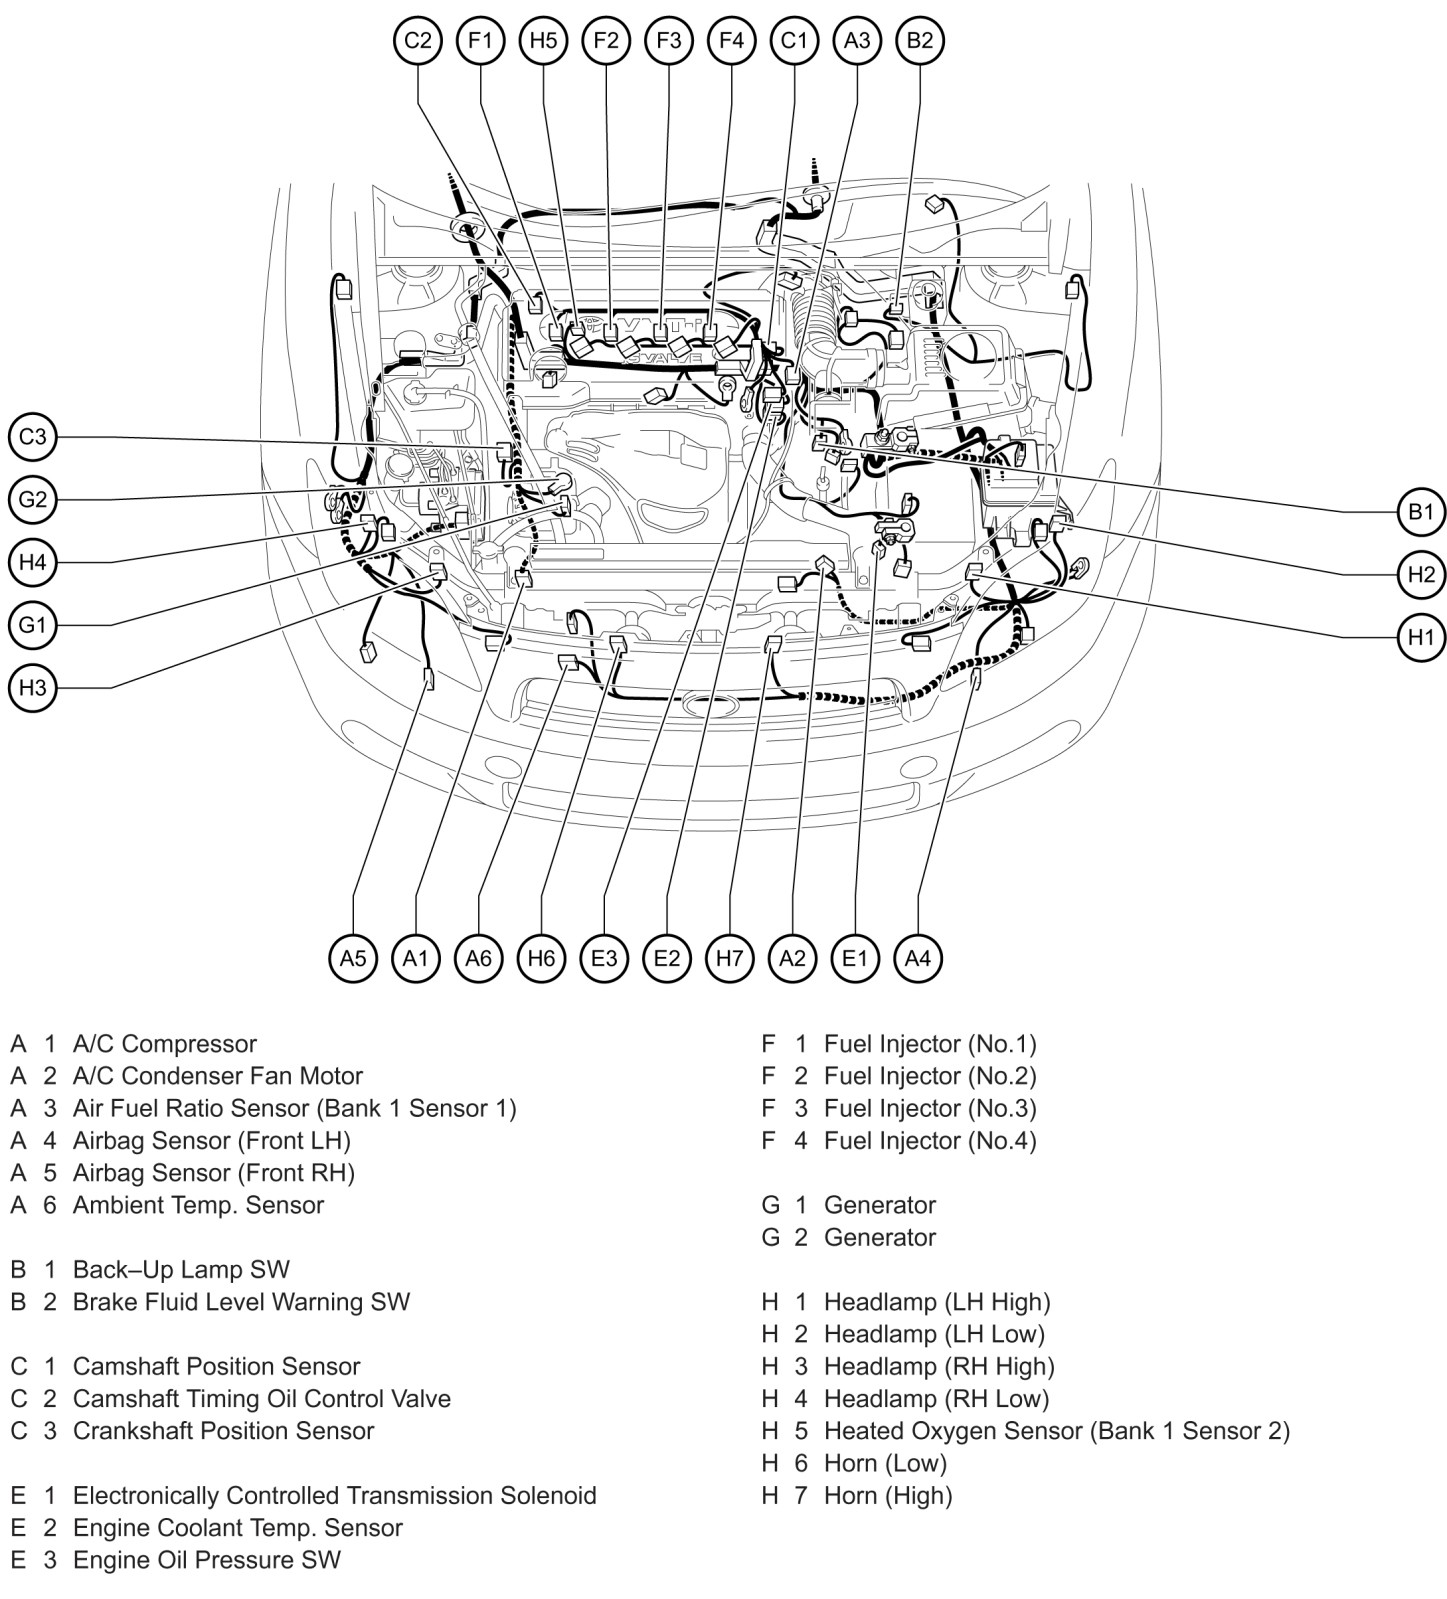 Scion xb engine diagram introduction to electrical wiring diagrams u2022 rh jillkamil scion fr s 2014 scion xb